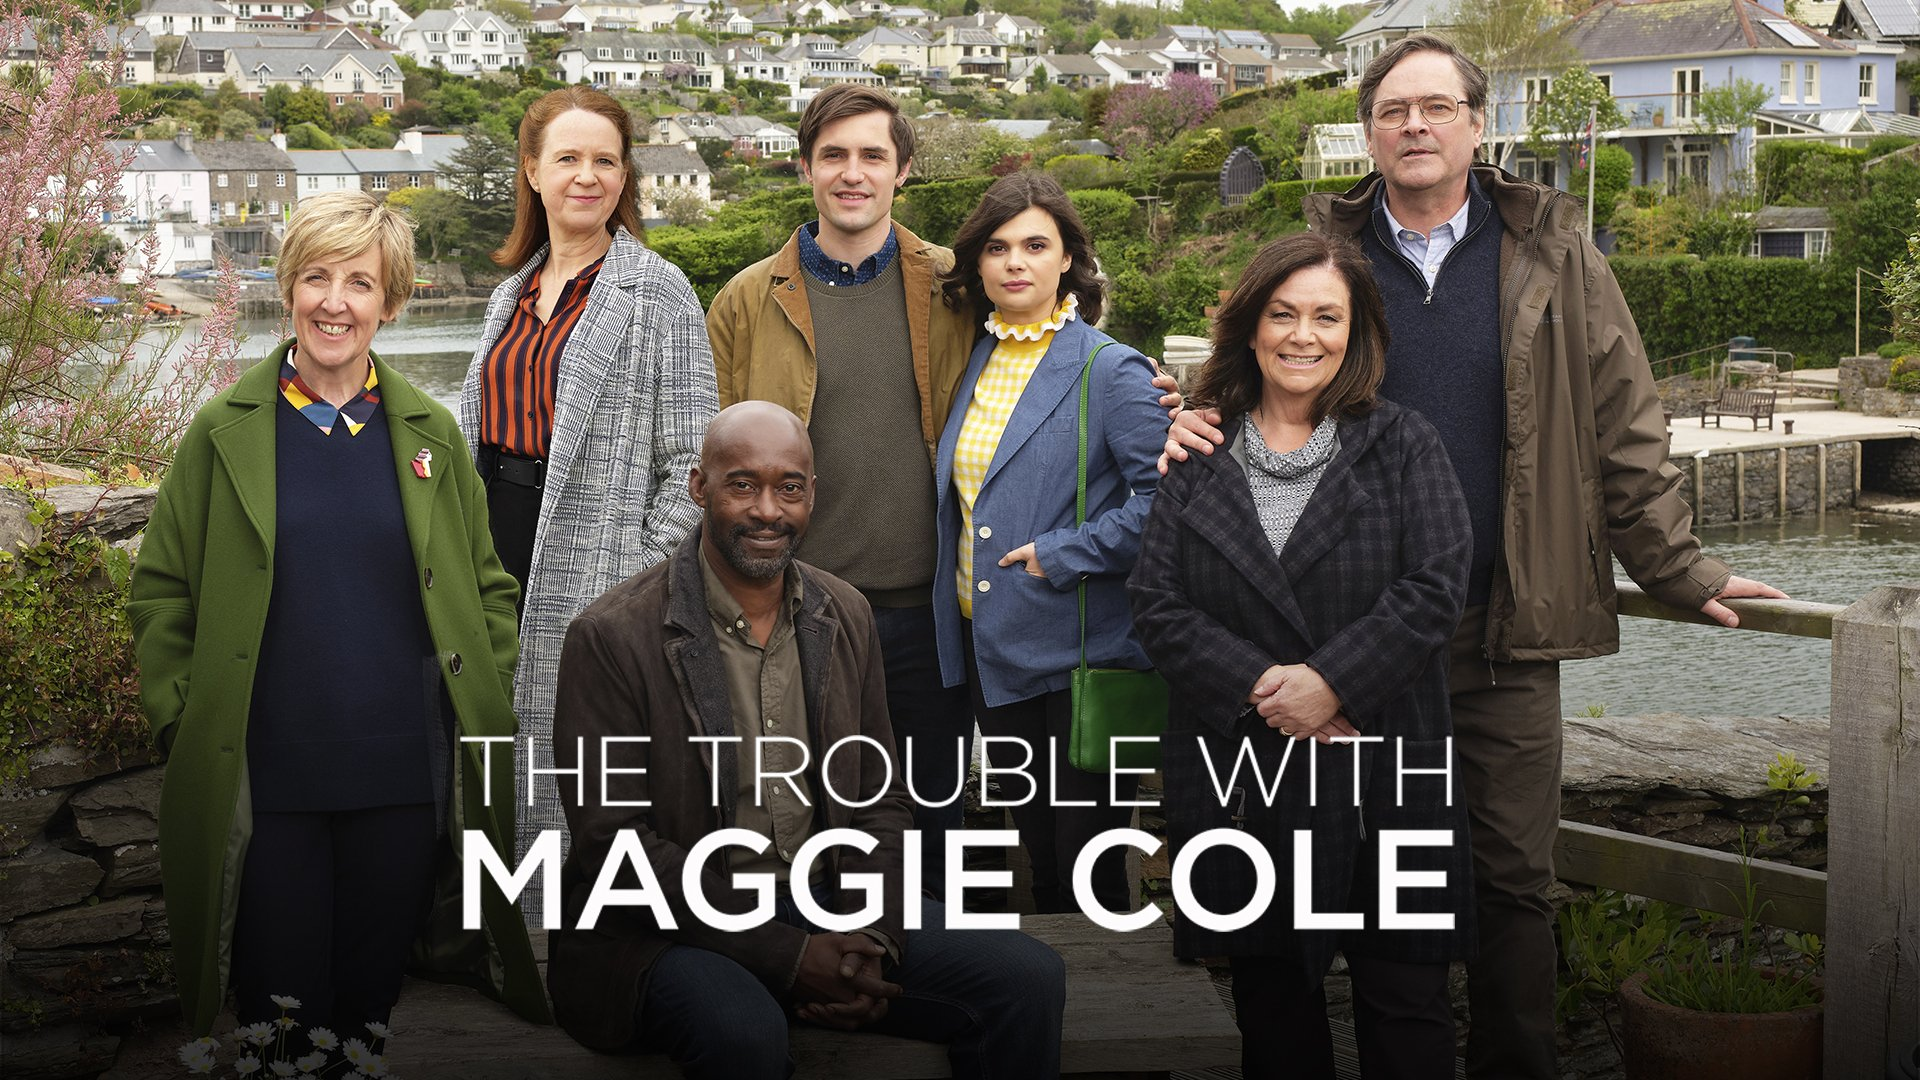 The Trouble with Maggie Cole on BritBox UK